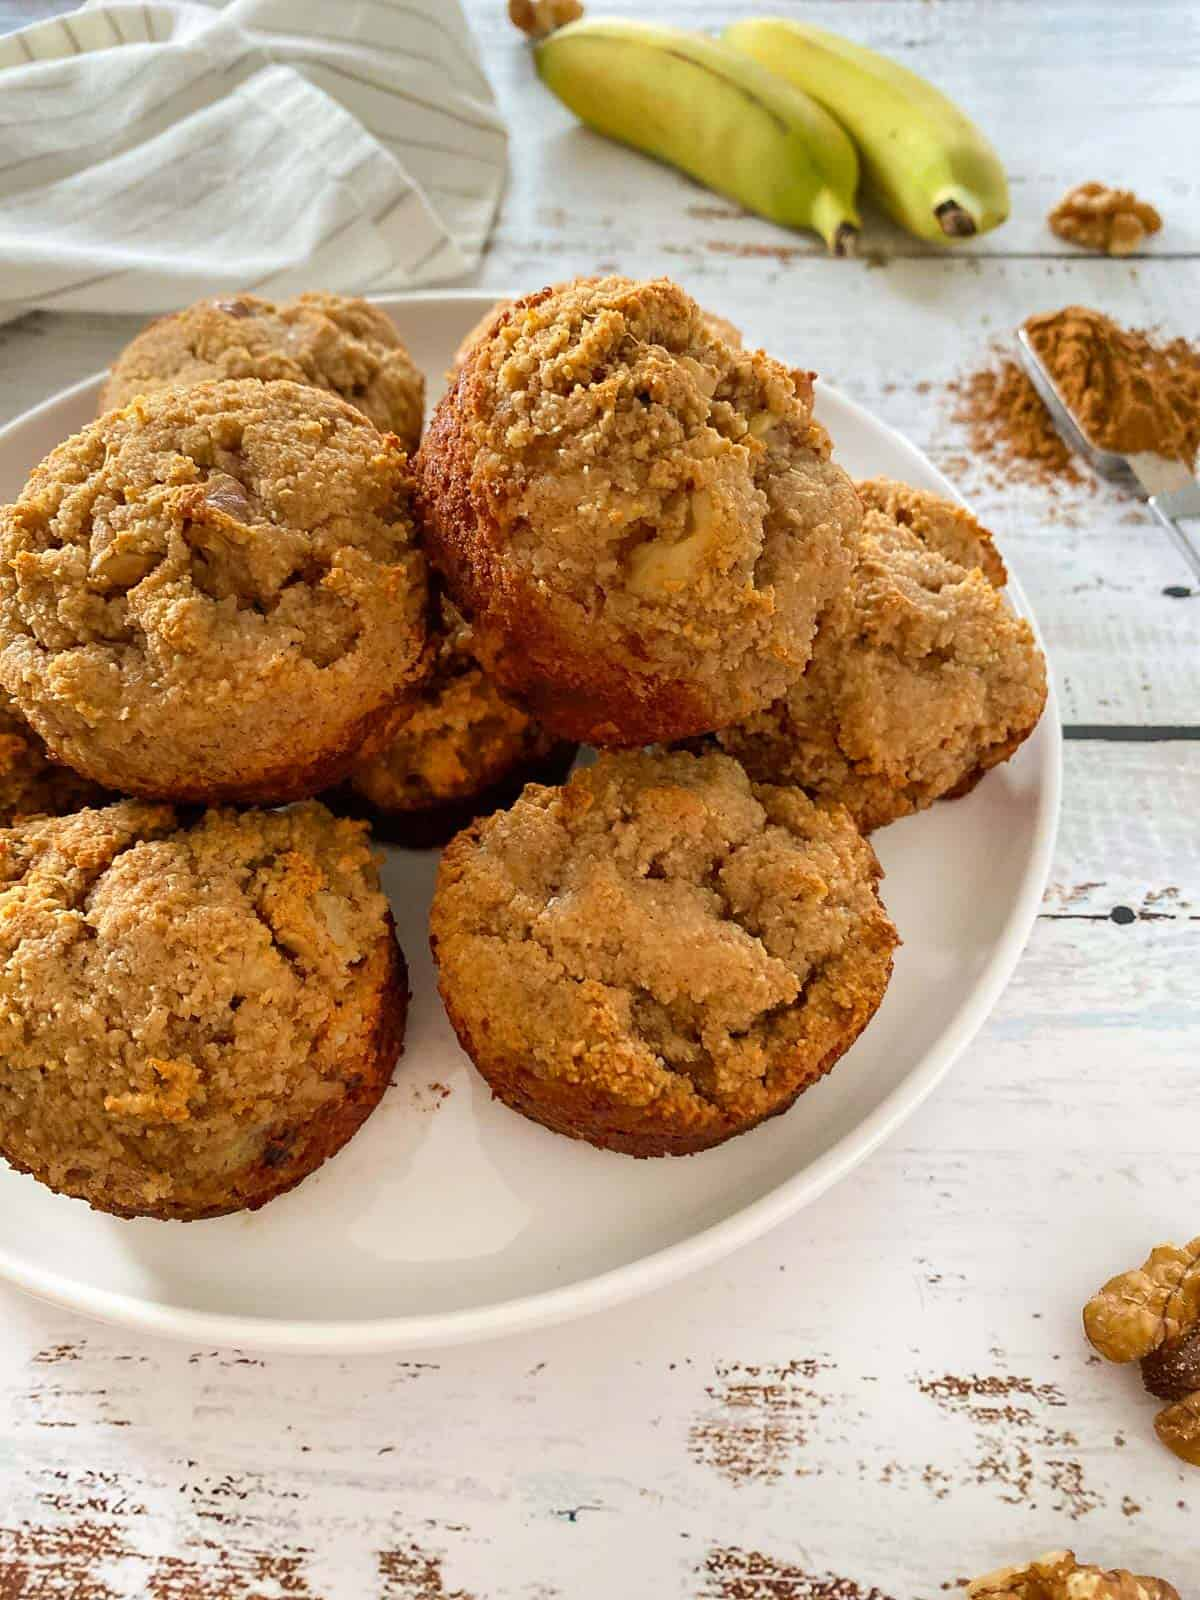 Banana muffins stacked on white plate.